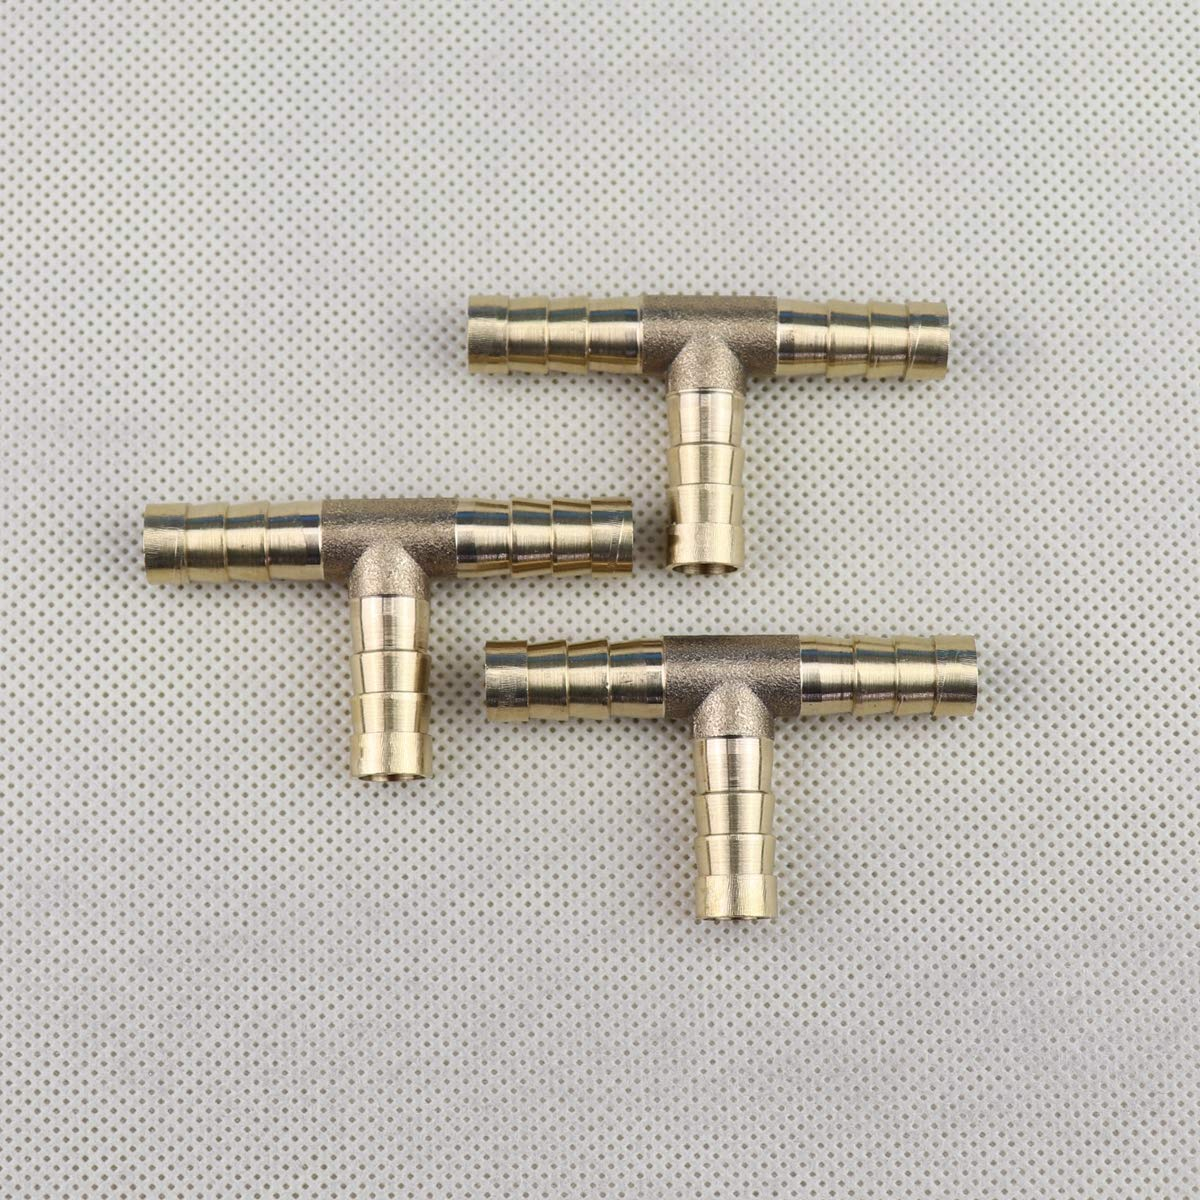 5//16 x 5//16 x 5//16, 1 Tee Union Mender Joiner Fuel Water Gas Air Brass Hose Barb Splice T-Fitting